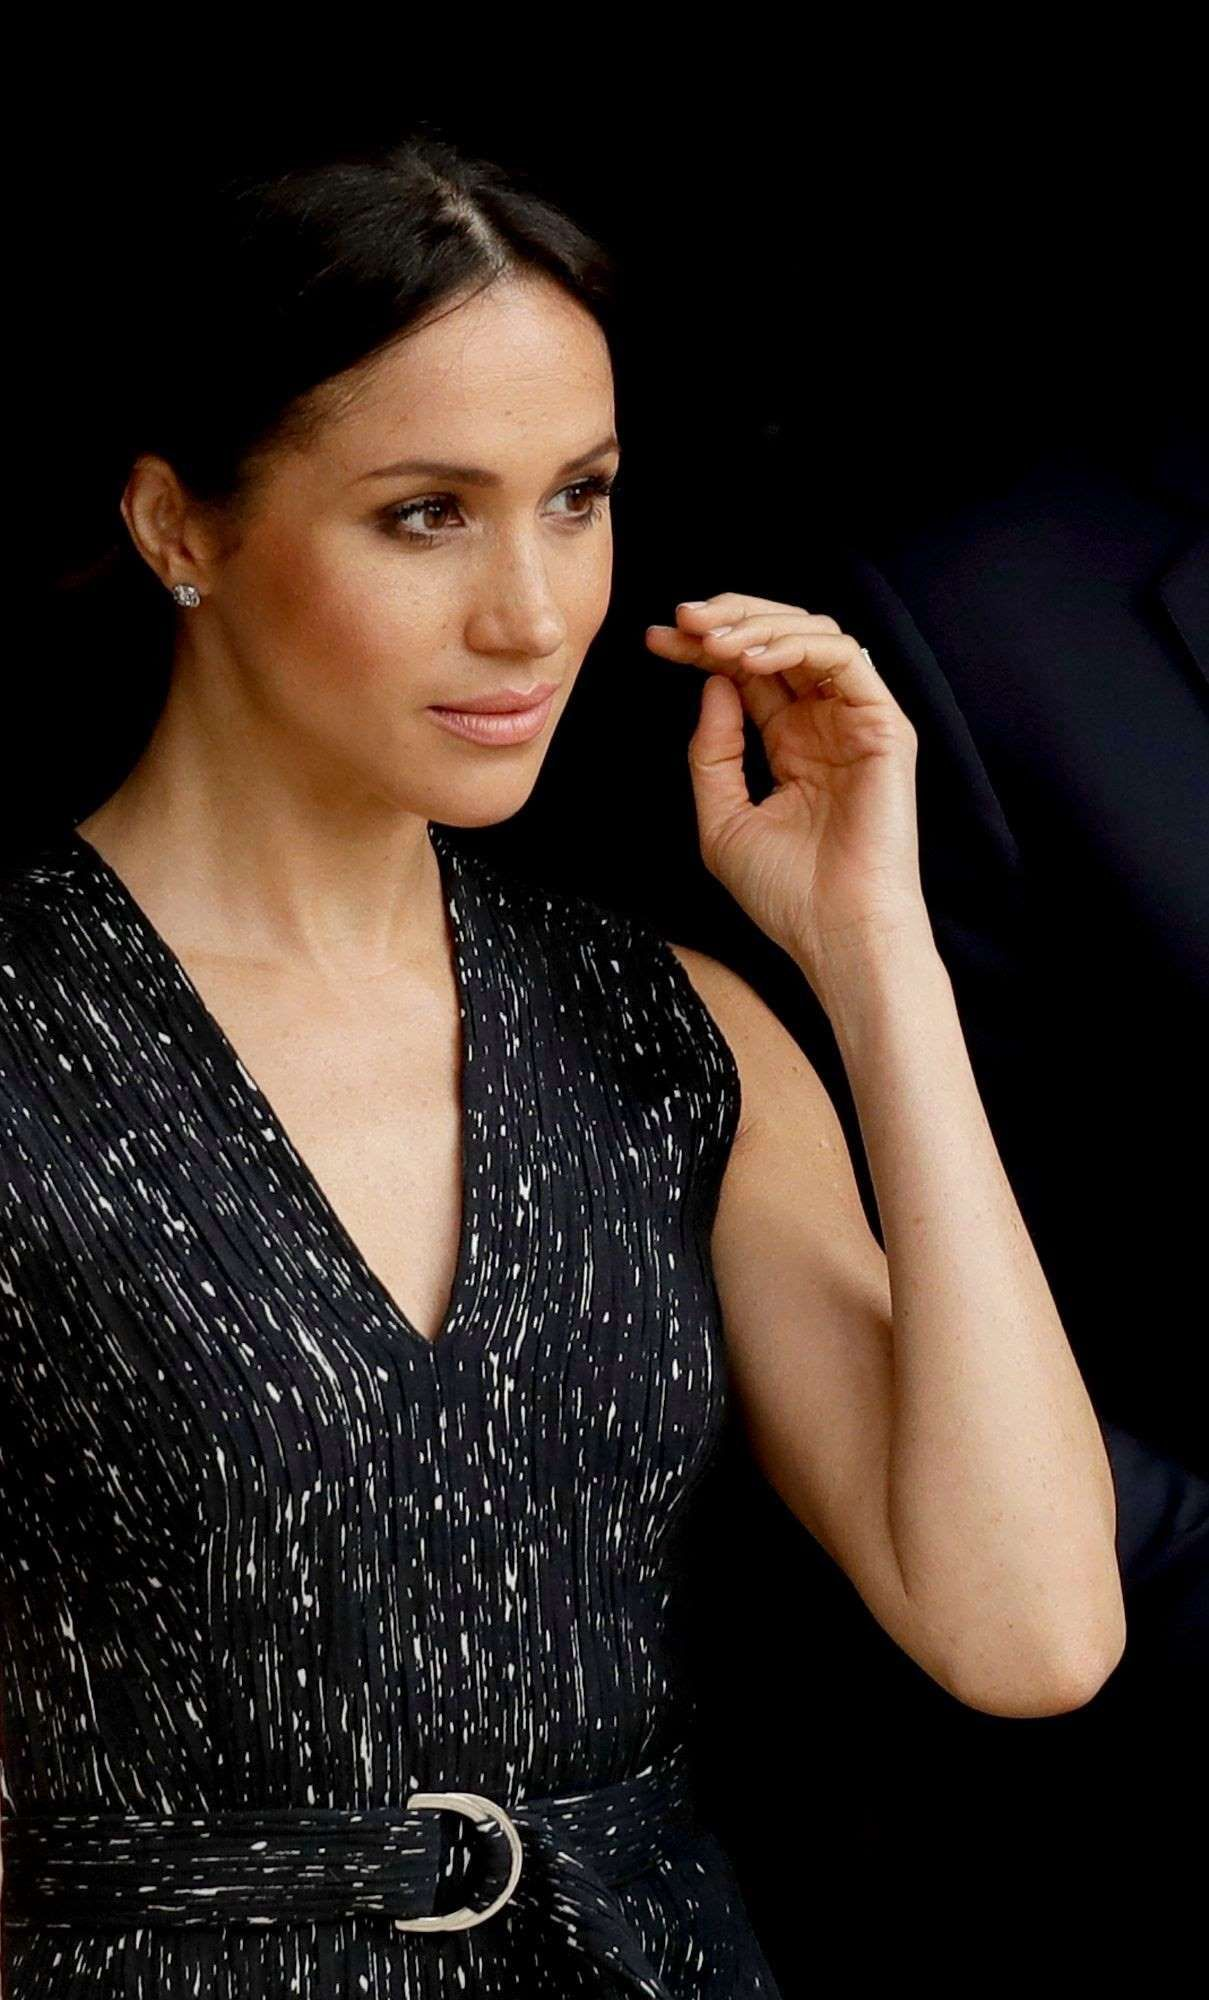 Meghan Markle talking on a cell phone Meghan Markle